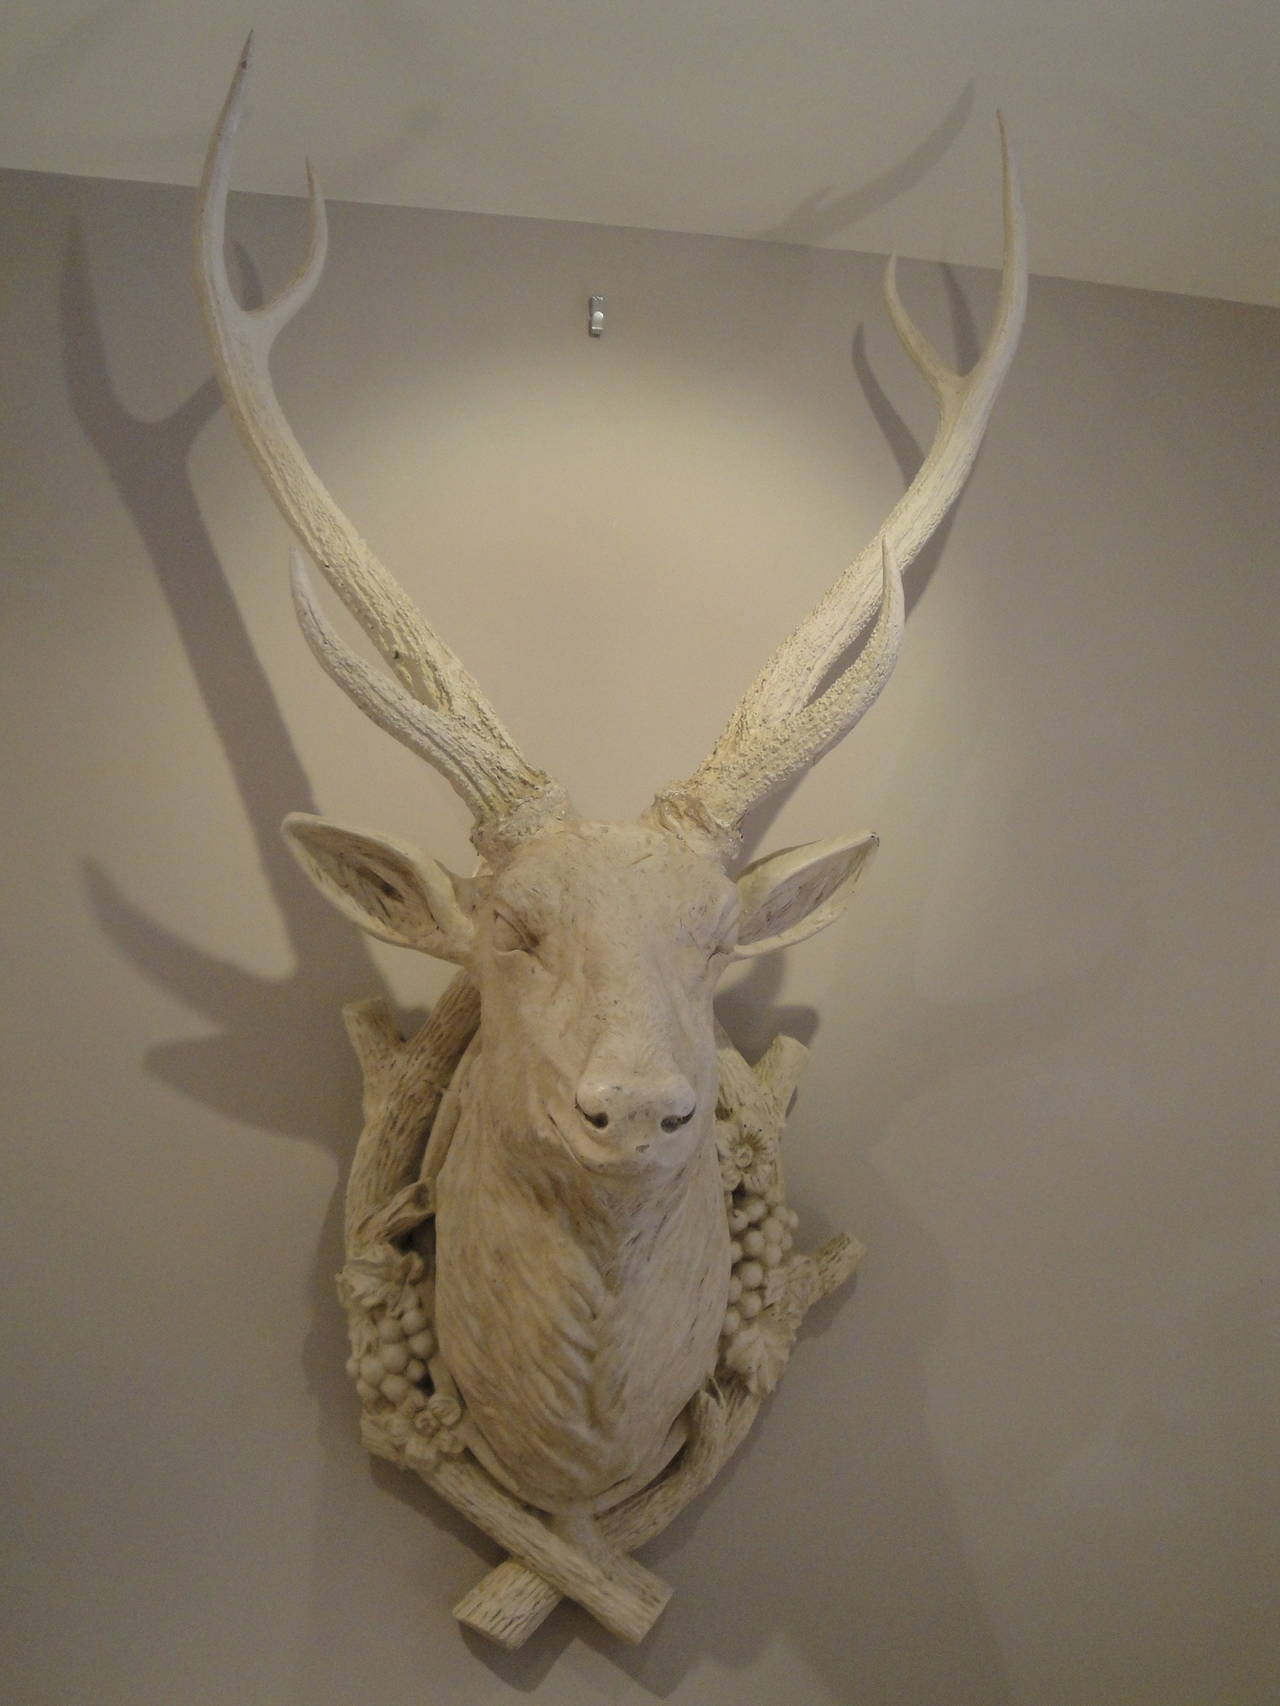 20th century french decorative stags head for sale at 1stdibs - Decorative stags head ...